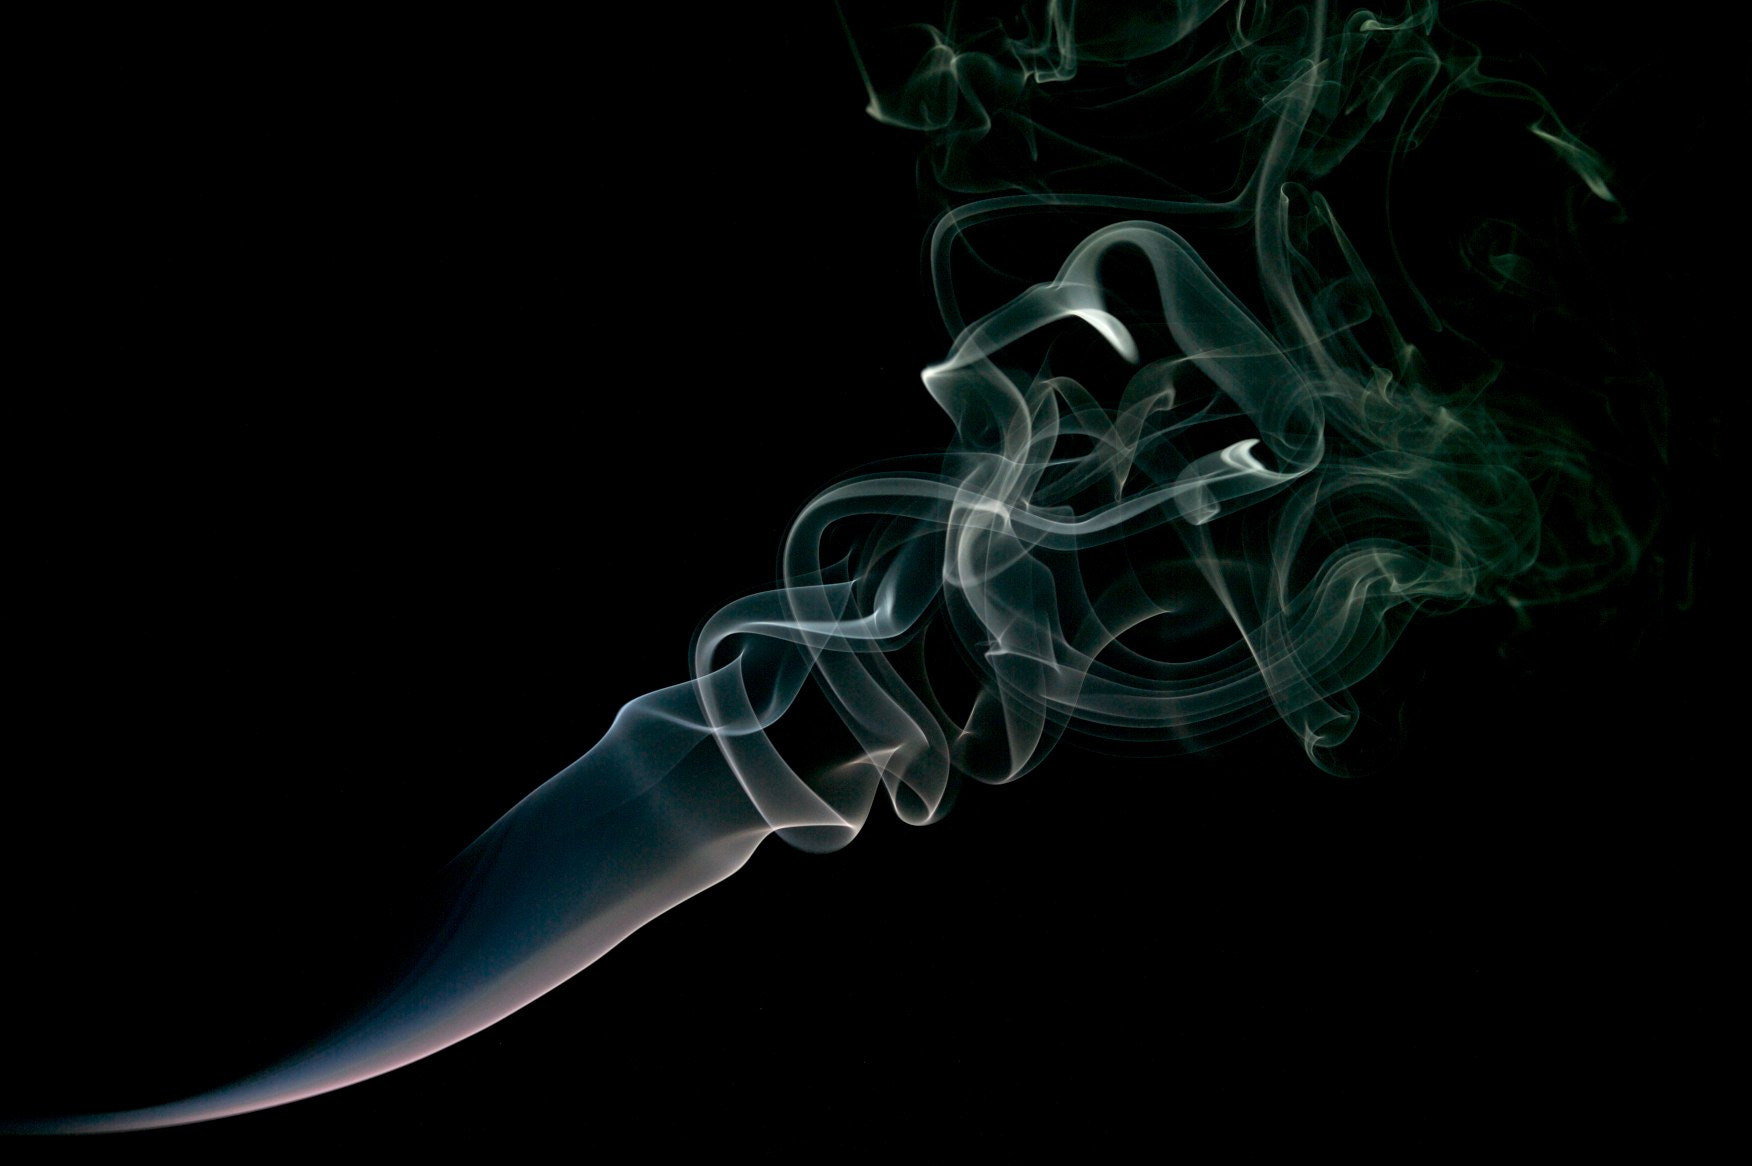 Photograph Smoke shadows by Logan Brown on 500px